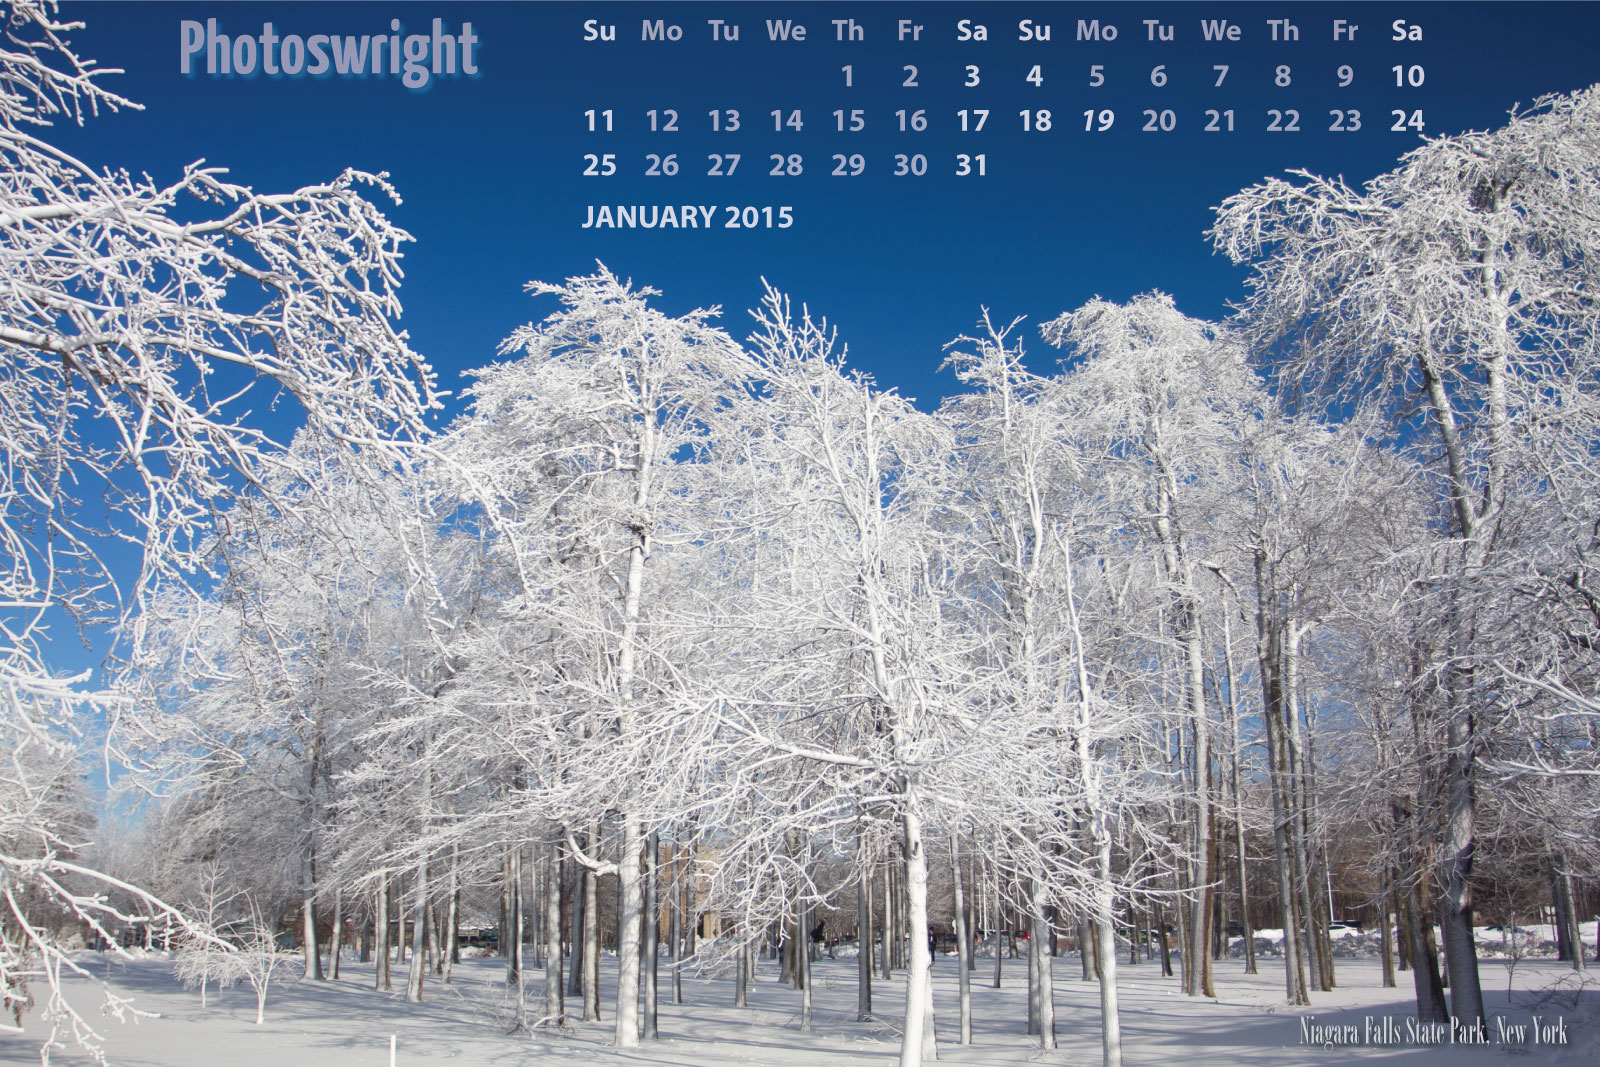 Photoswright web calendar for January 2015